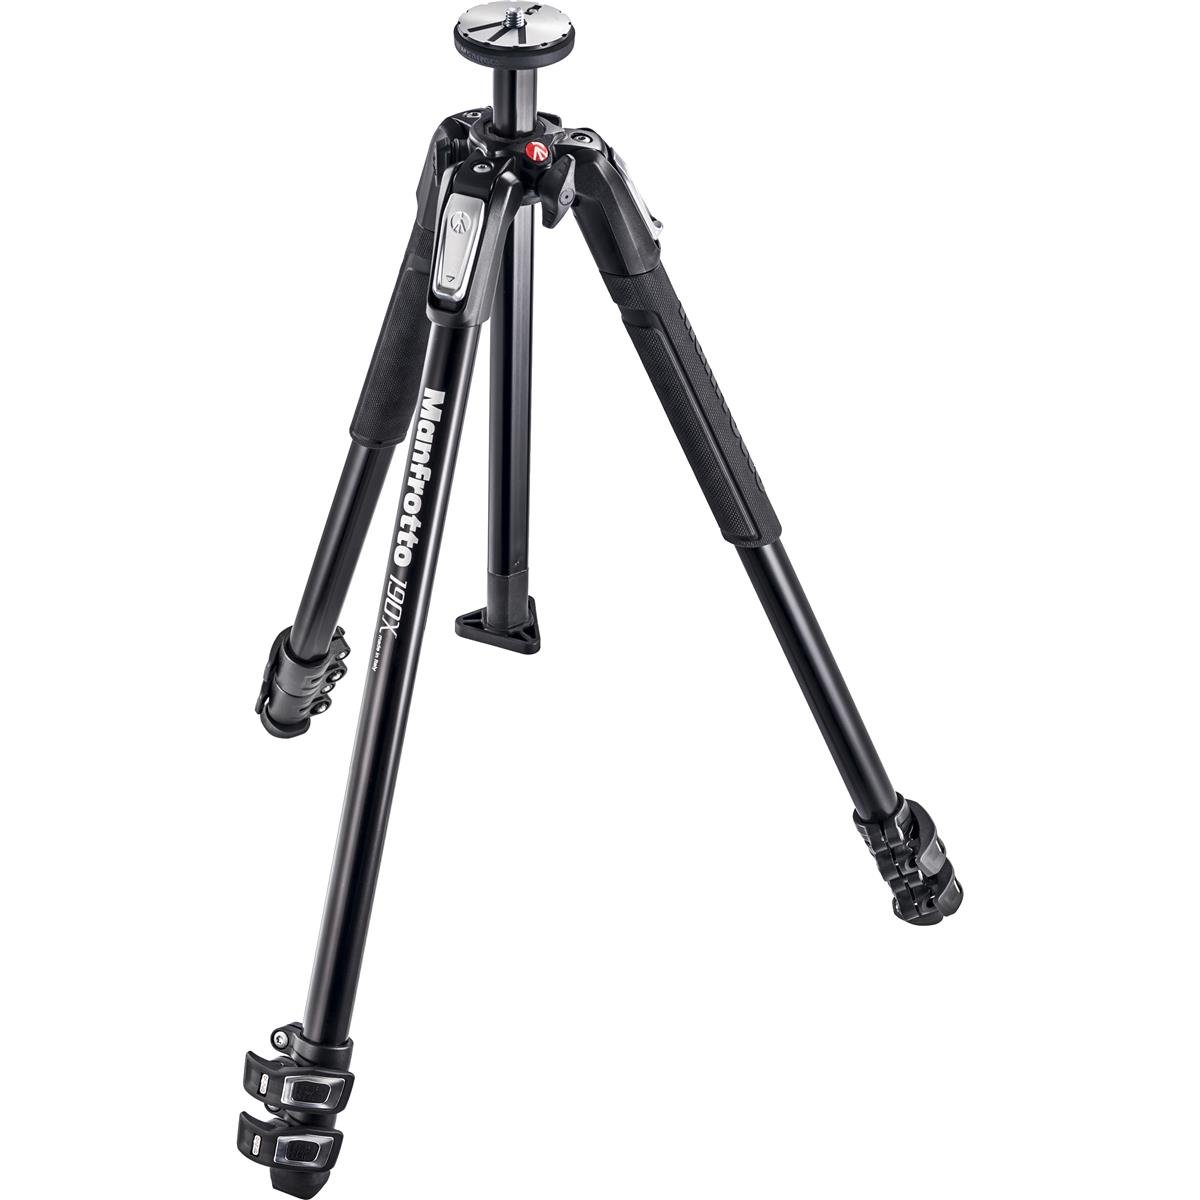 Manfrotto MVH502AH Pro Video Head with Quick-Release and Flat Base (3/8''-16 Connection), - With Manfrotto 190X 3 Section Aluminum Tripod by Manfrotto